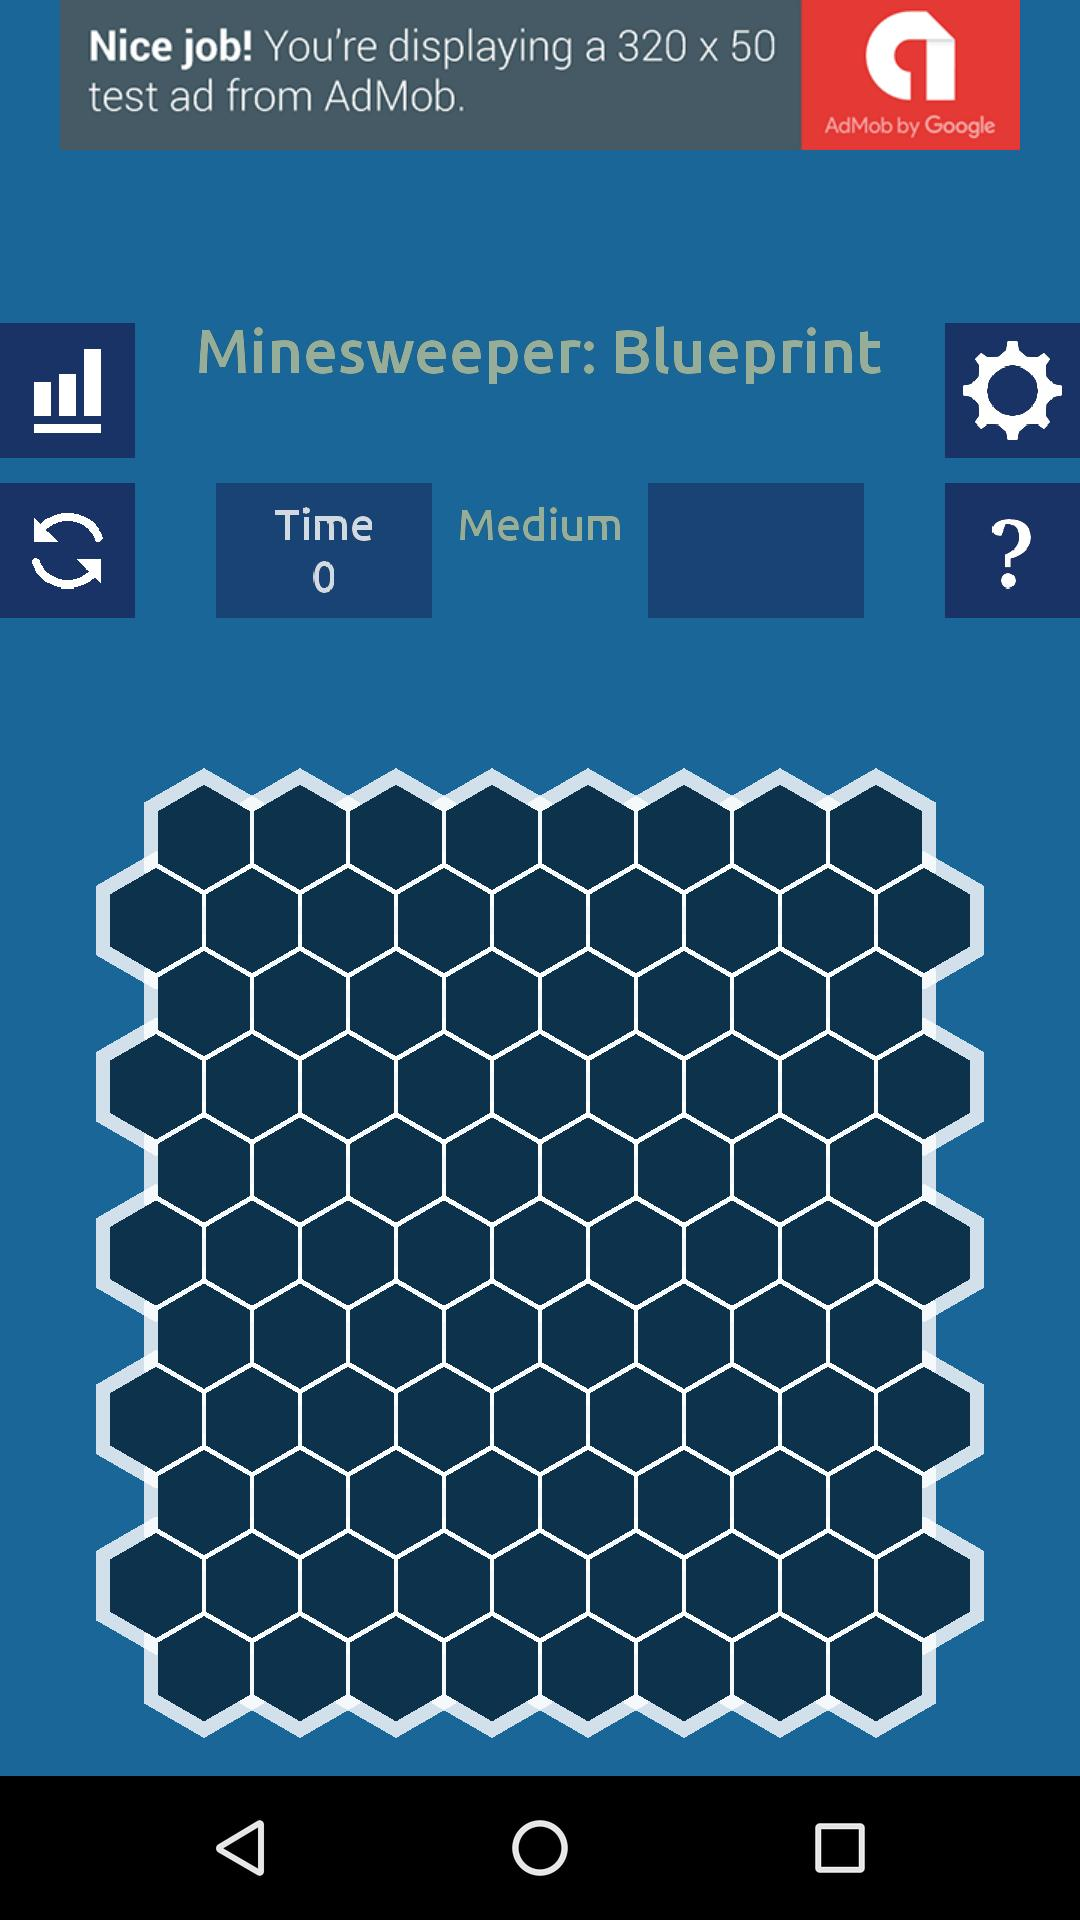 Minesweeper: Blueprint for Android - APK Download